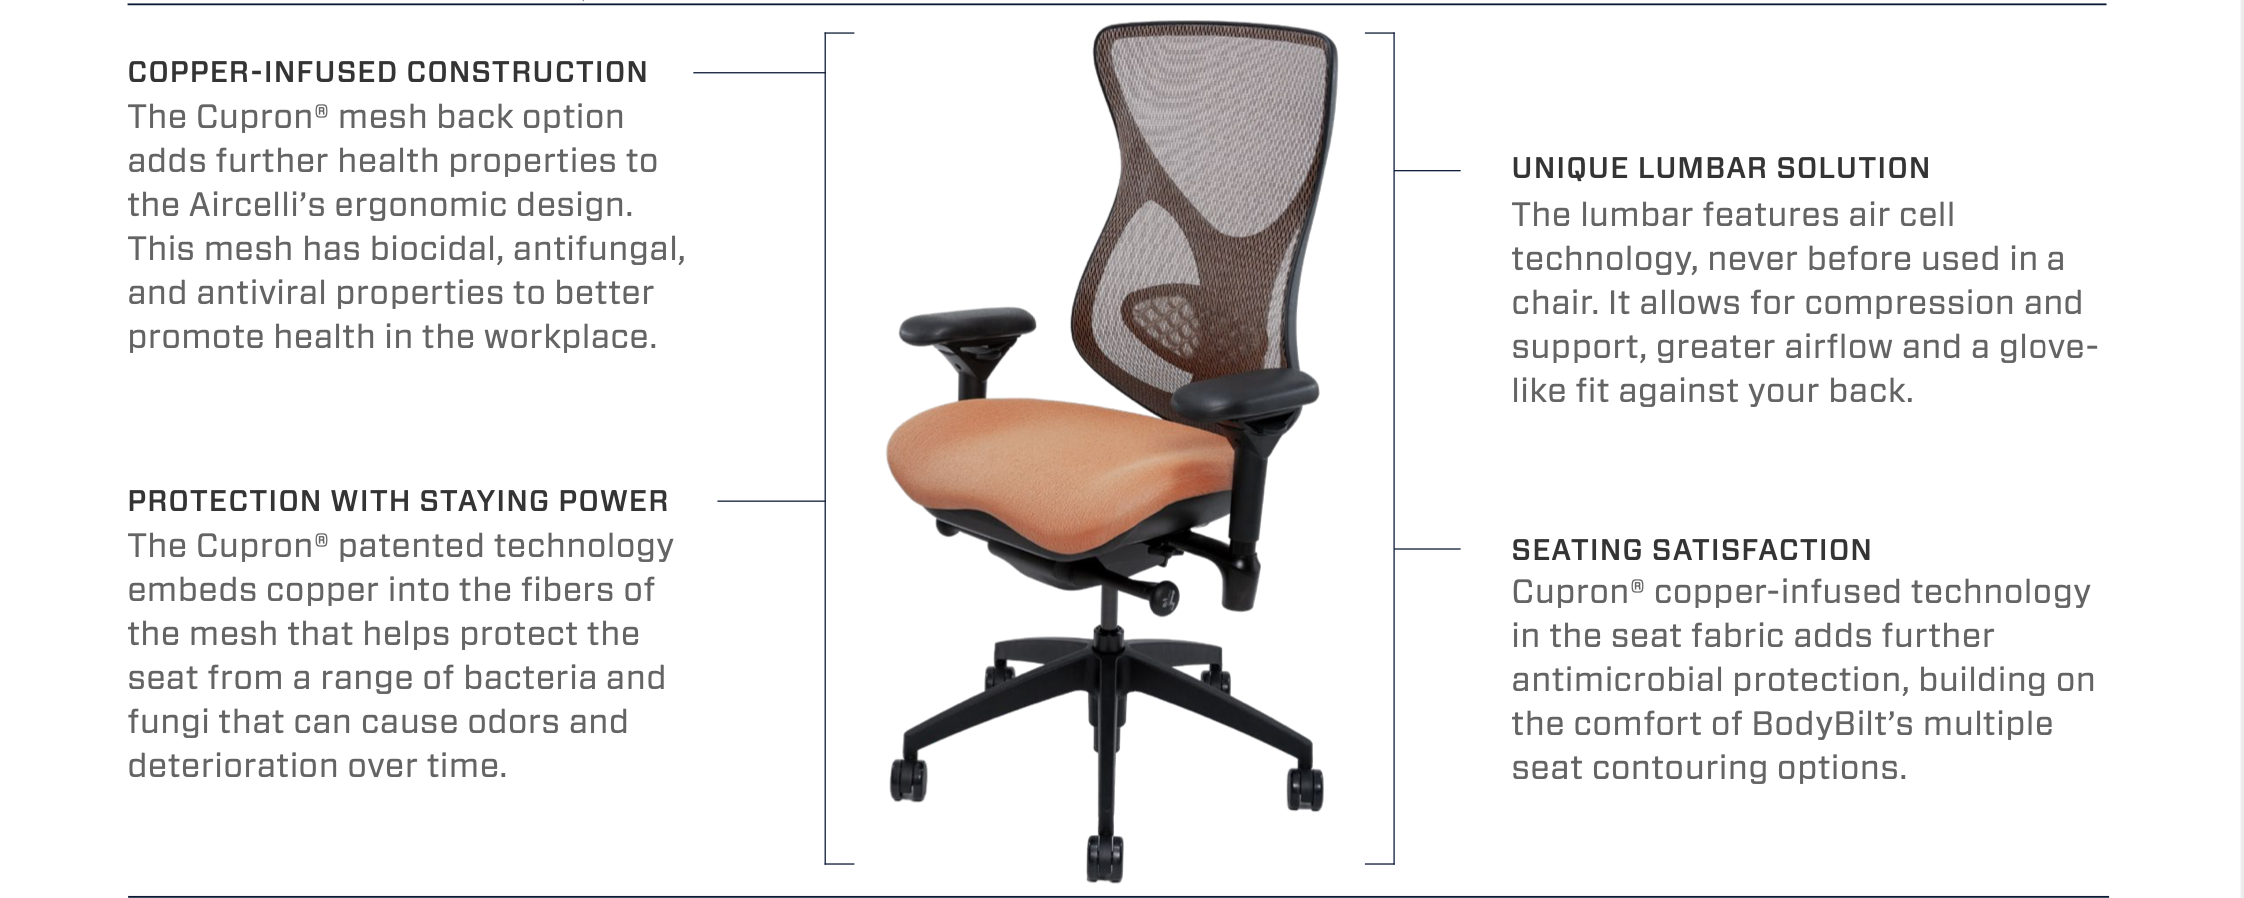 A diagram detailing the new functions of the Ascelli copper-infused chair